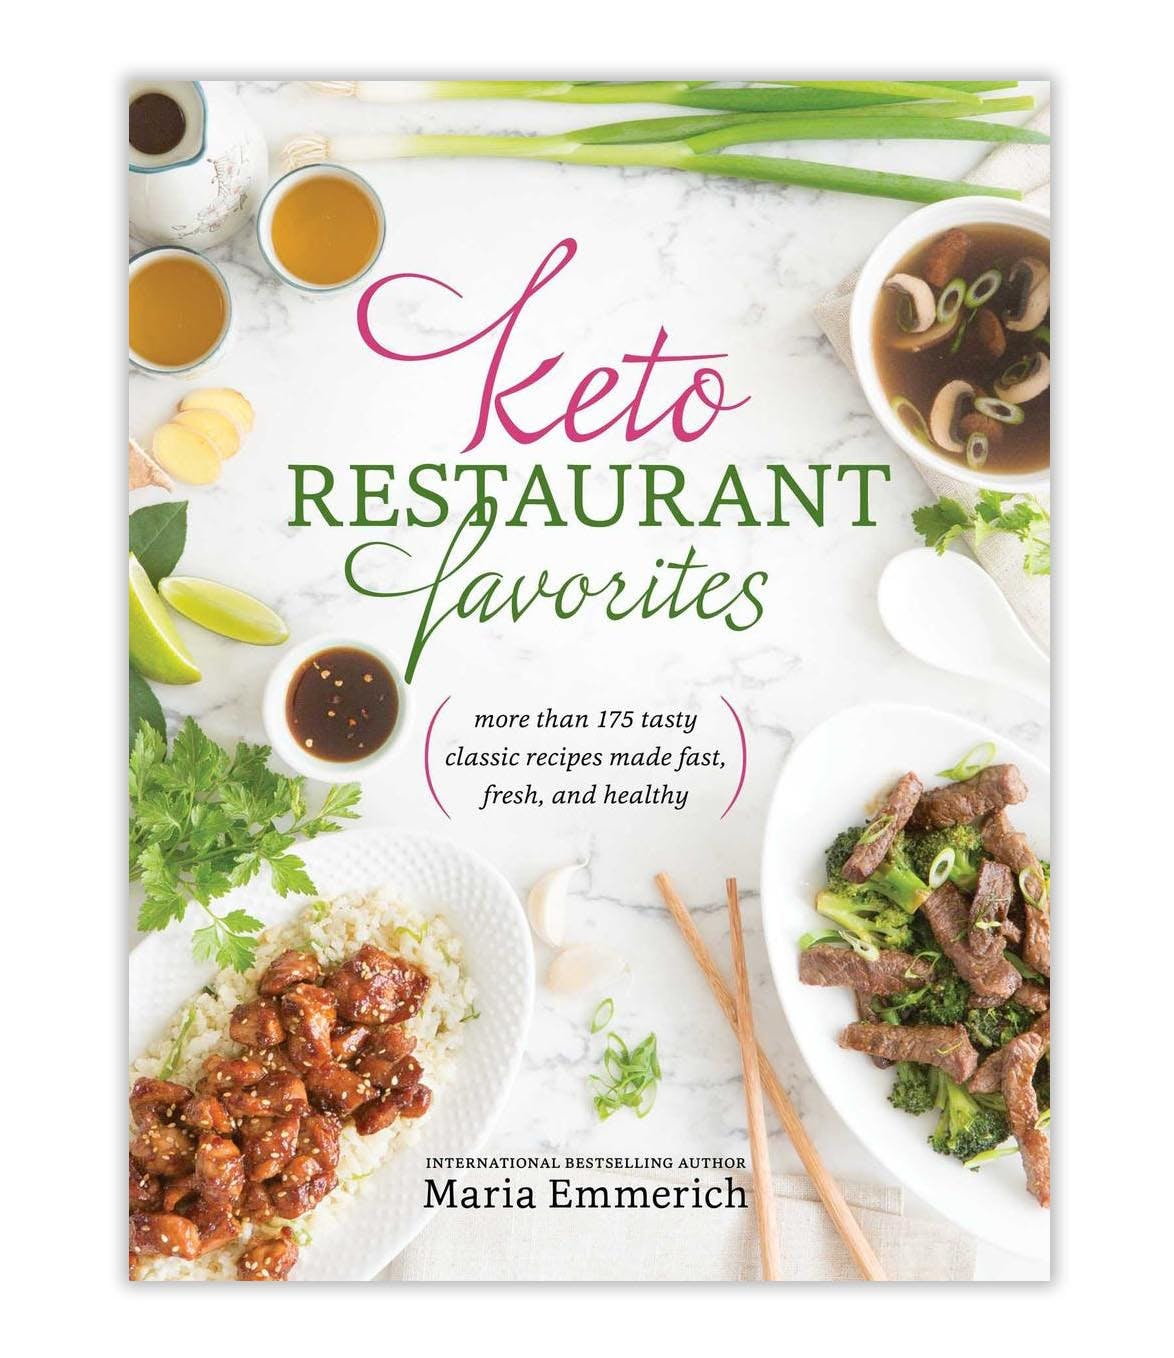 'Keto Restaurant Favorites' review